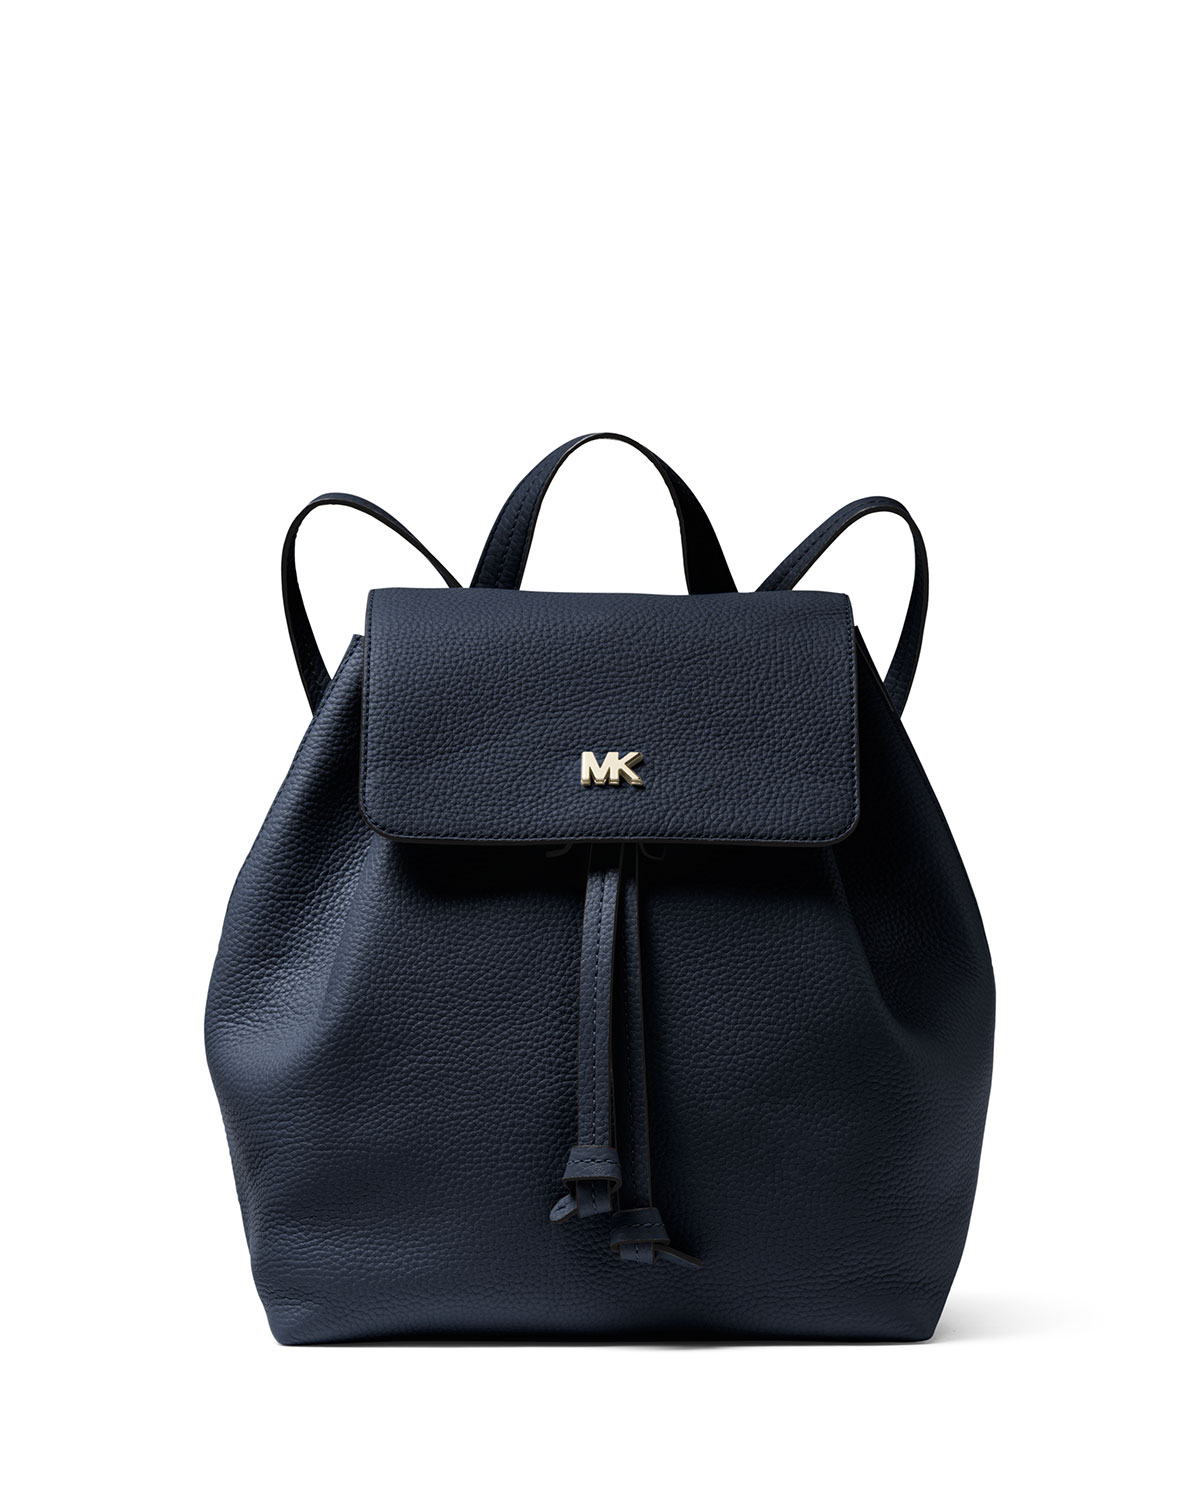 a6298d2ad7fb38 coupon michael kors jet set flap backpack 4fedd 08382; wholesale michael  michael korsjunie medium leather flap backpack ab7e6 43845